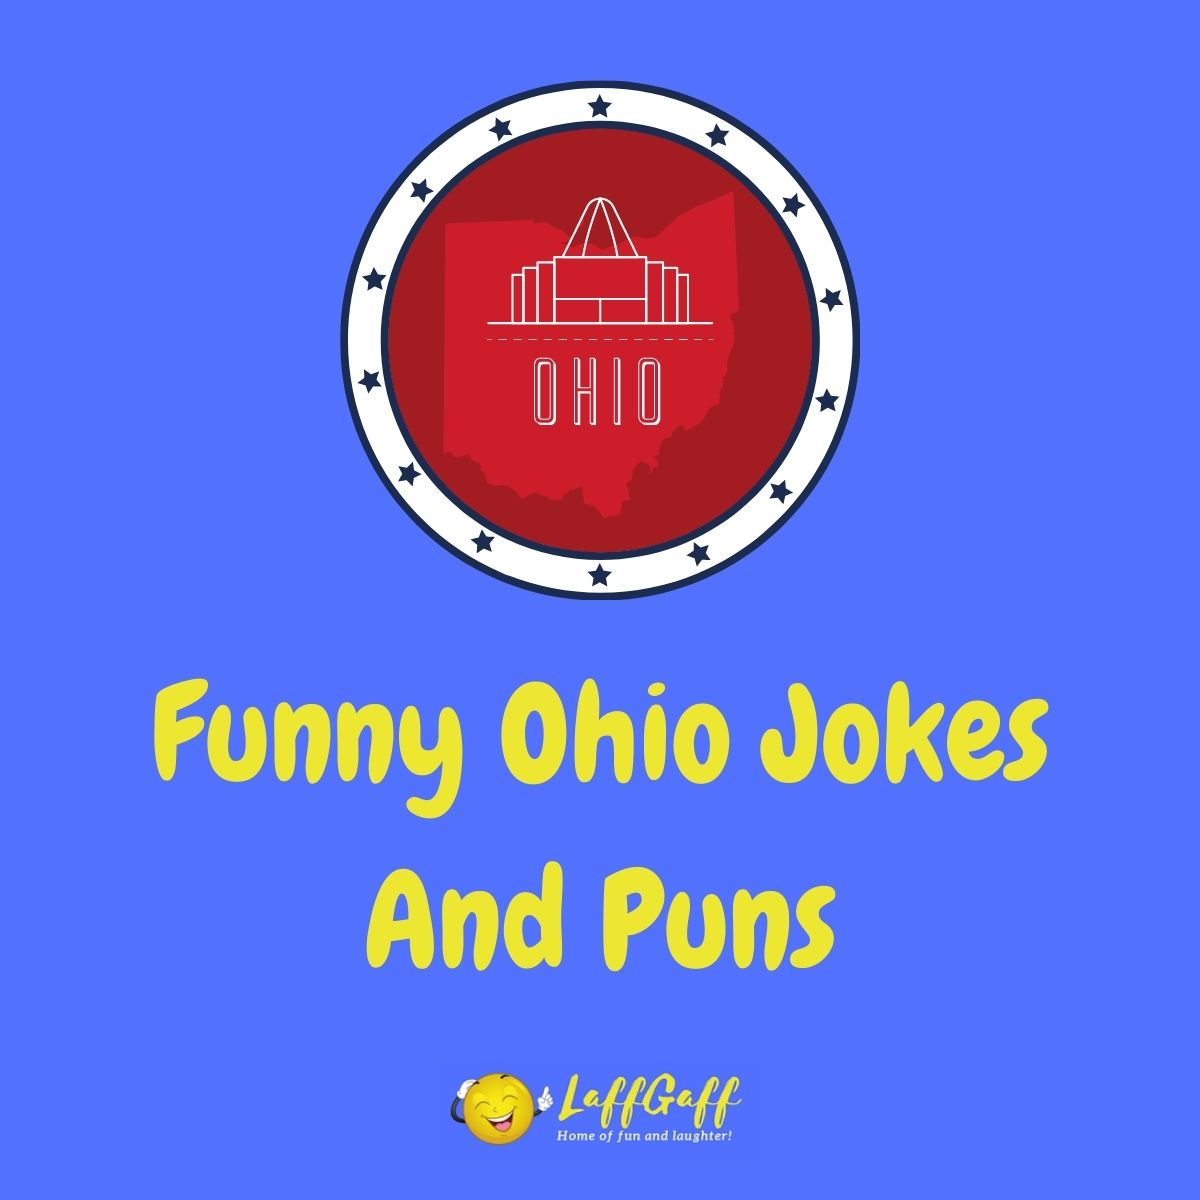 Featured image for a page of funny Ohio jokes and puns.